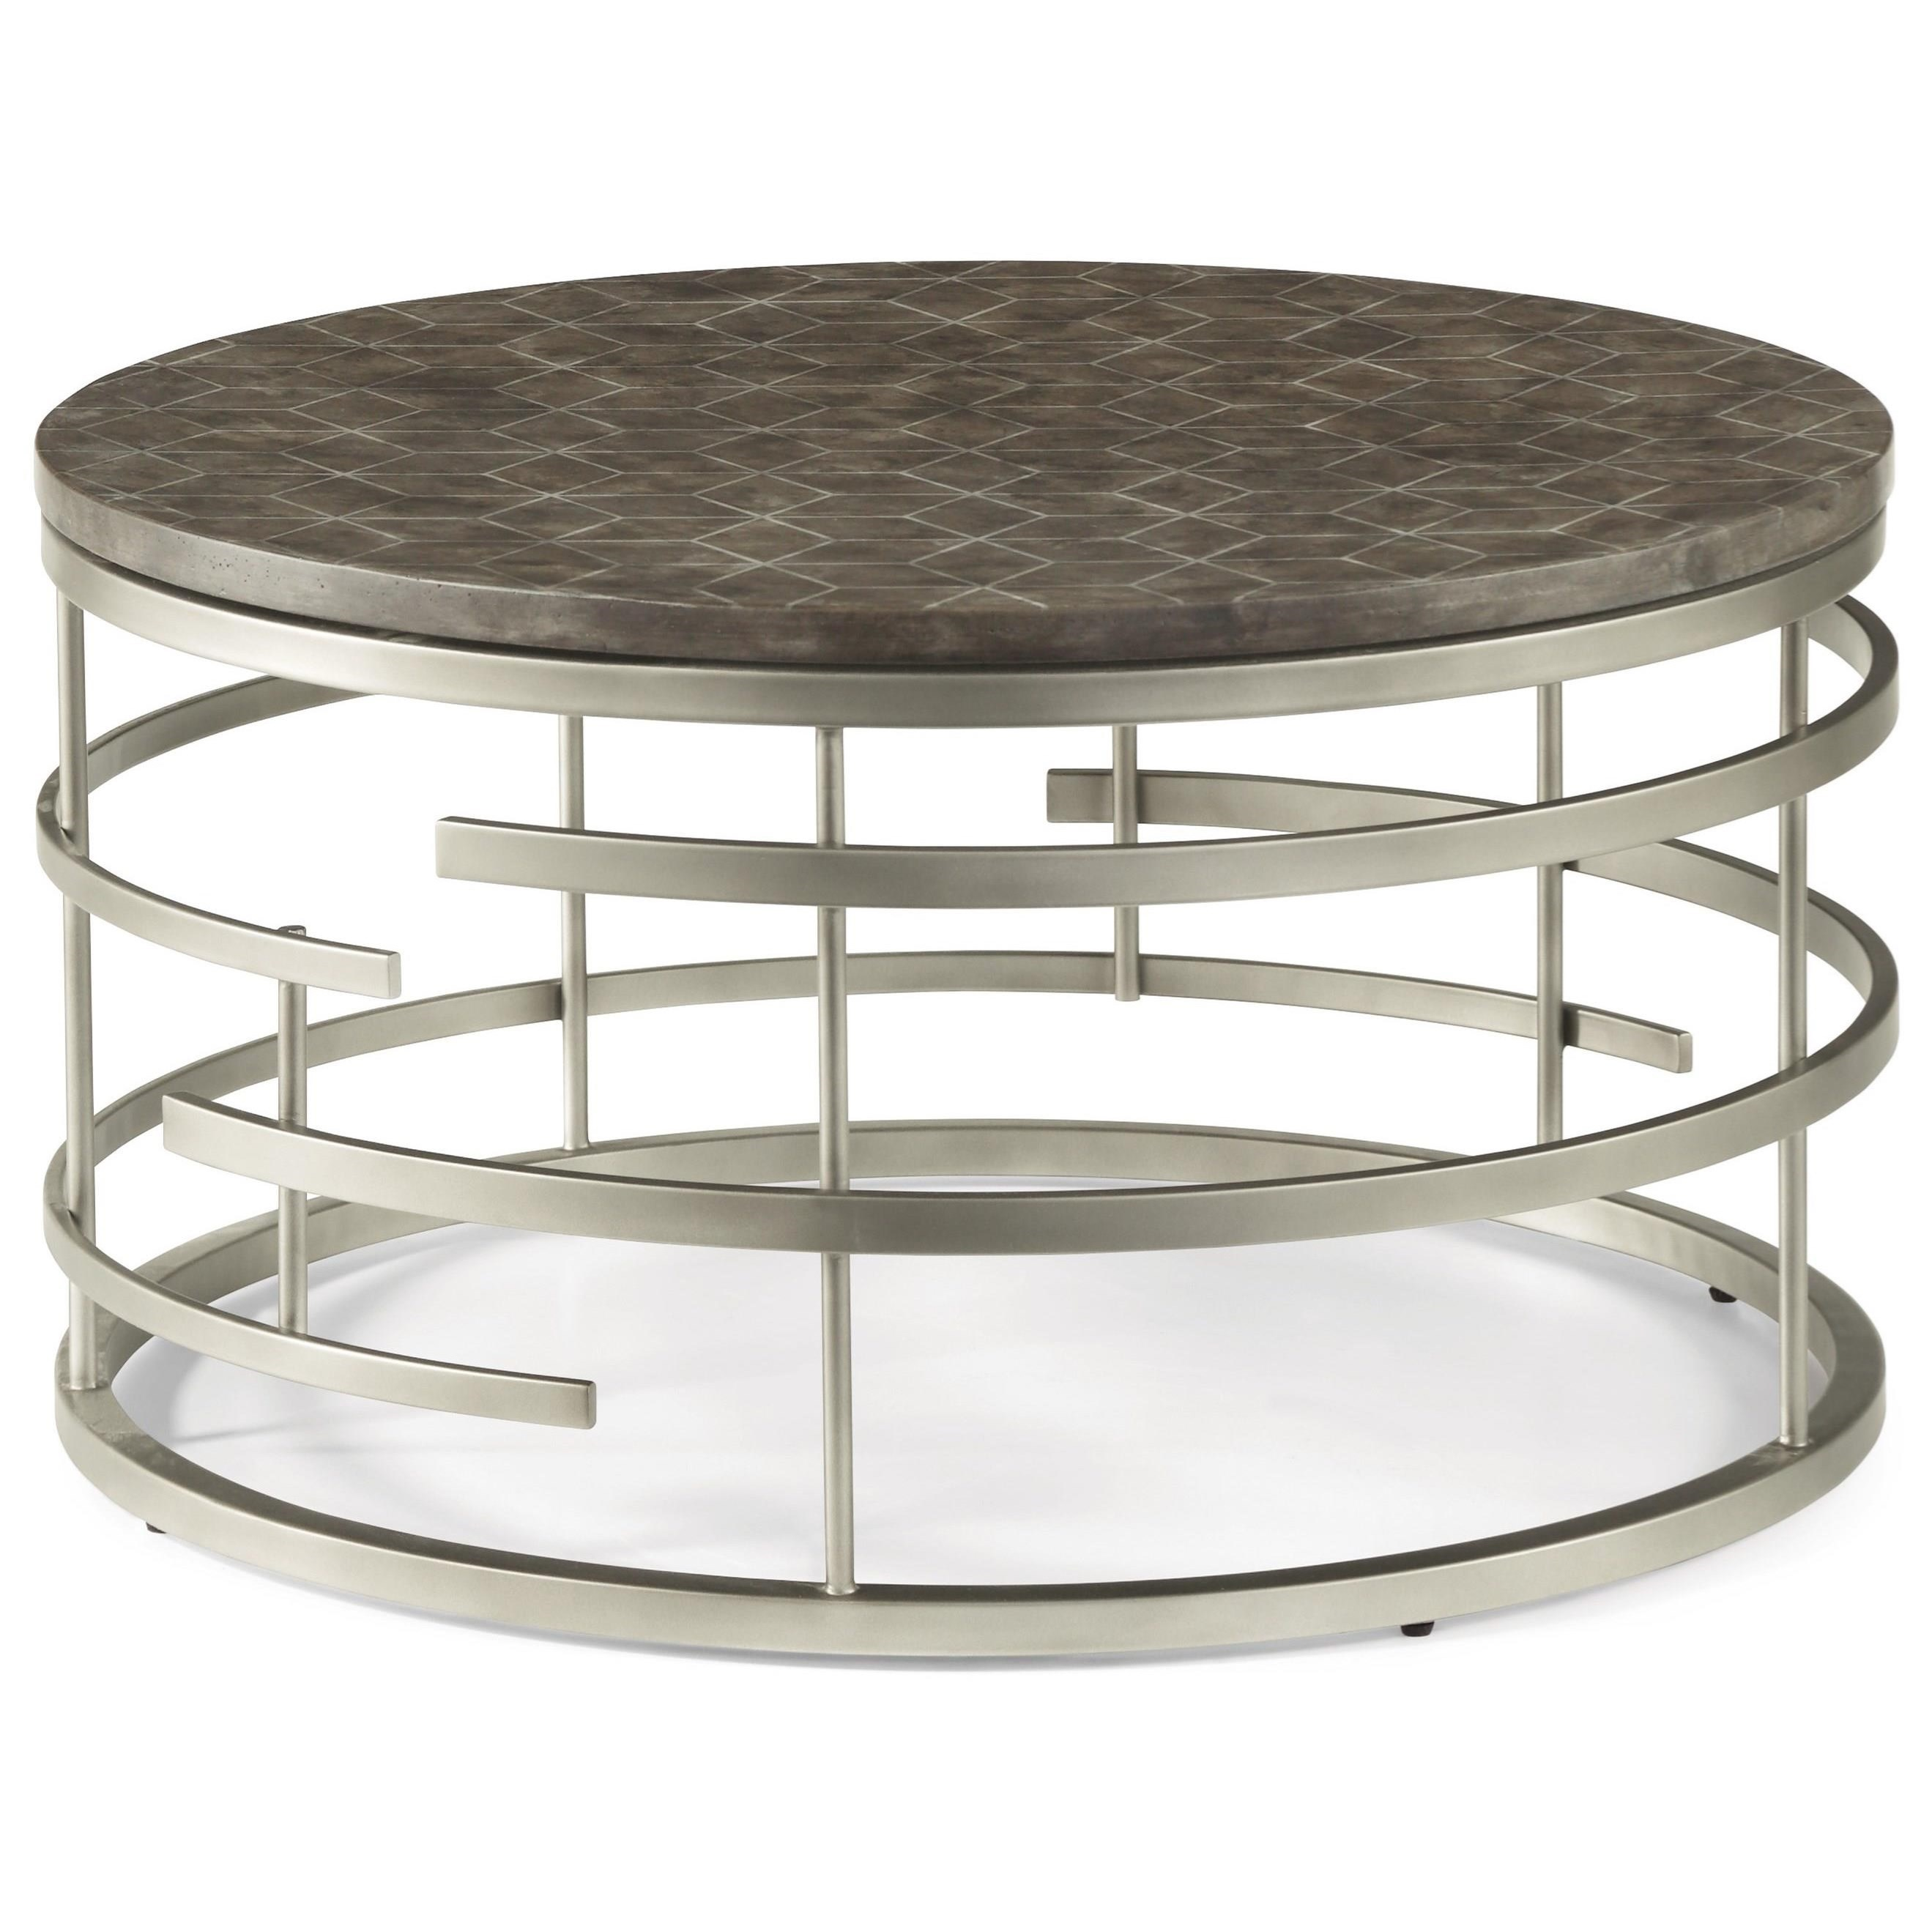 Halo Round Cocktail Table by Flexsteel Wynwood Collection at Darvin Furniture